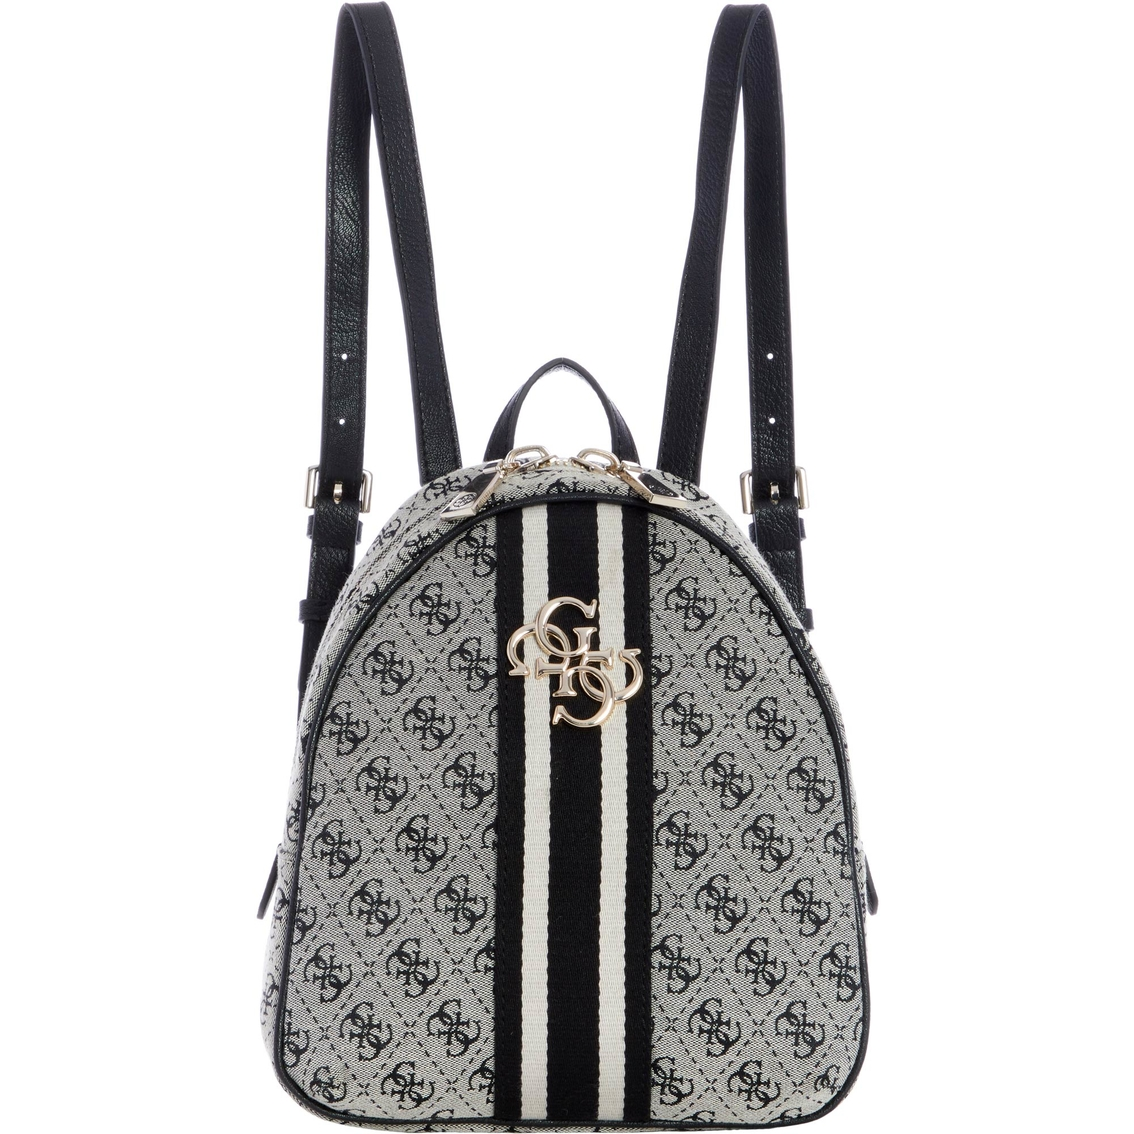 Guess Backpack | Fashion Backpacks | Handbags & Accessories